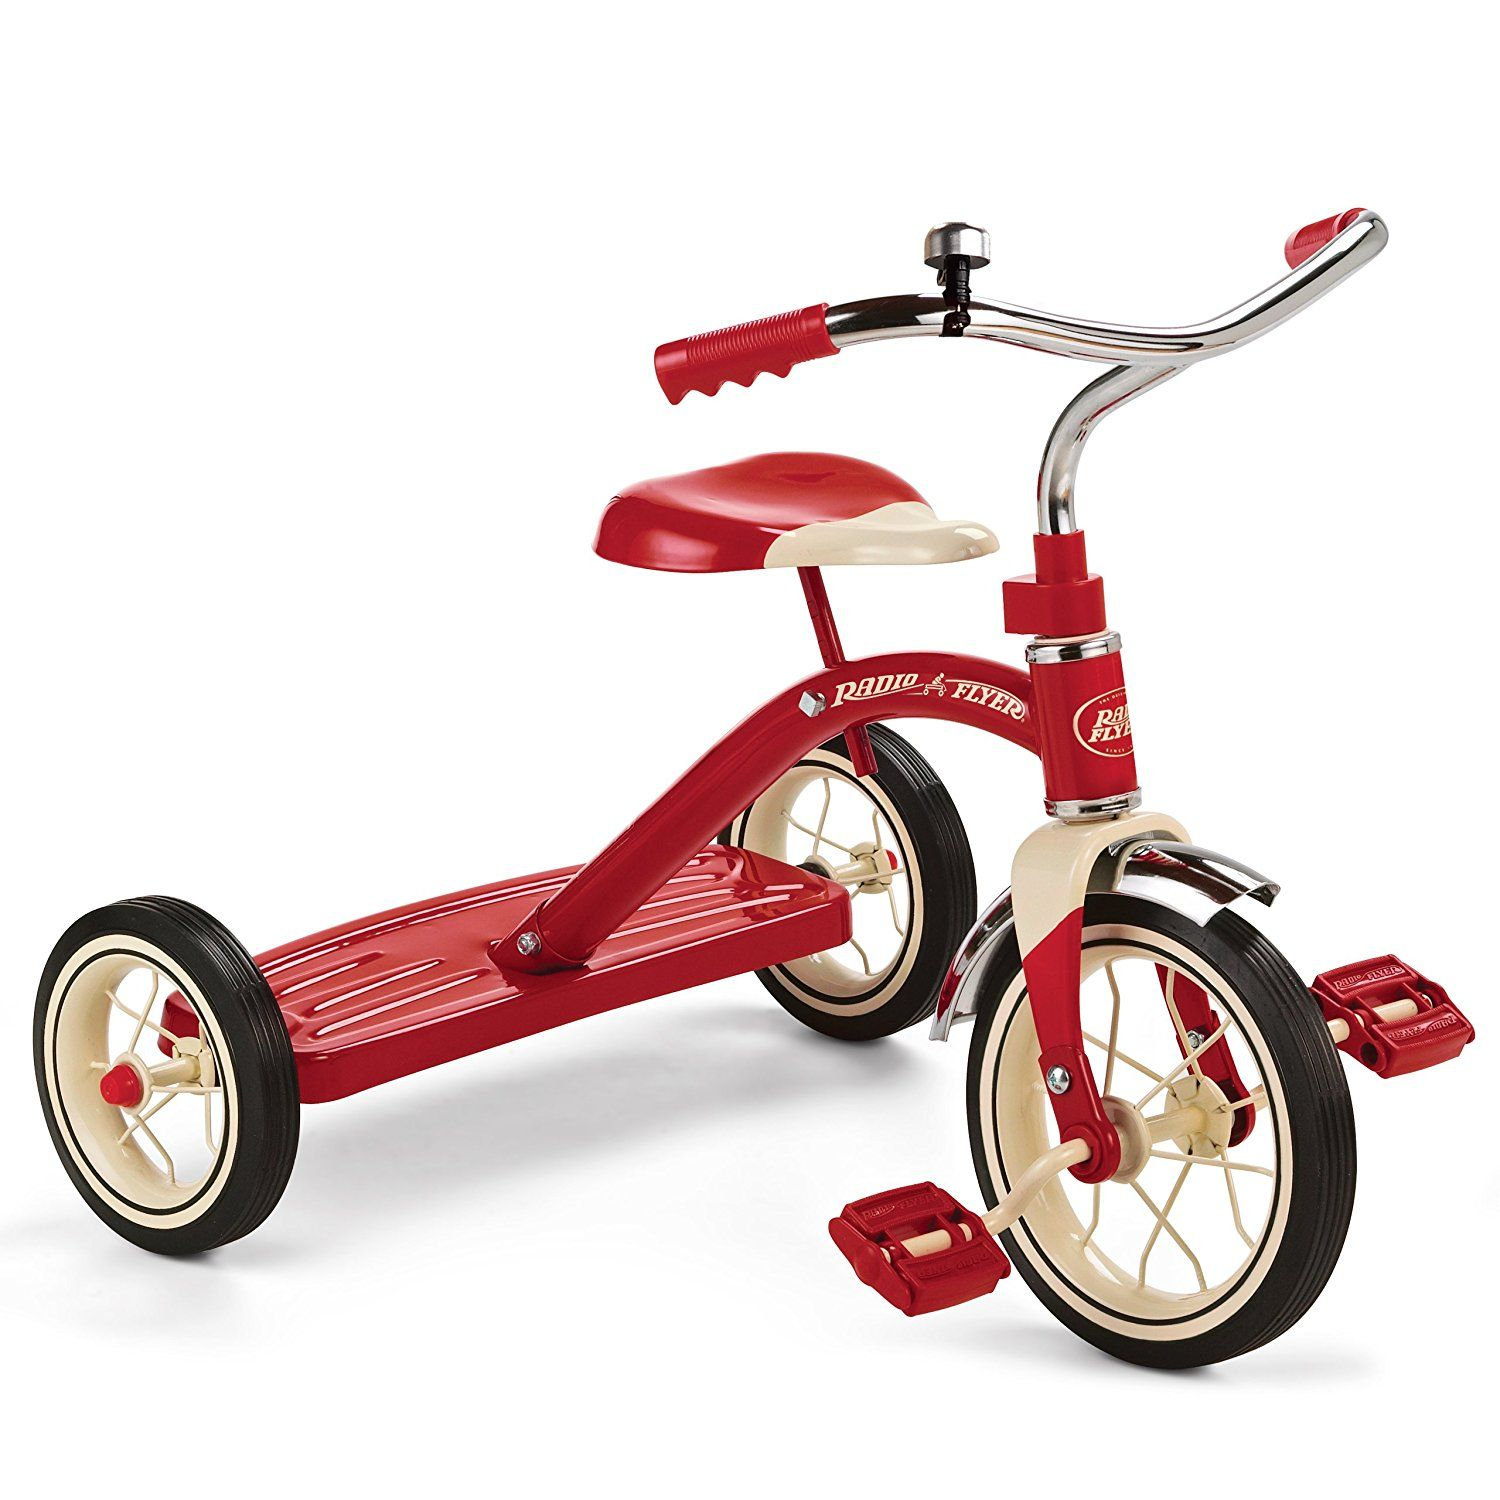 Best Toys For Toddlers 2 3 Years Old Tricycle Jouets Anciens Jouet